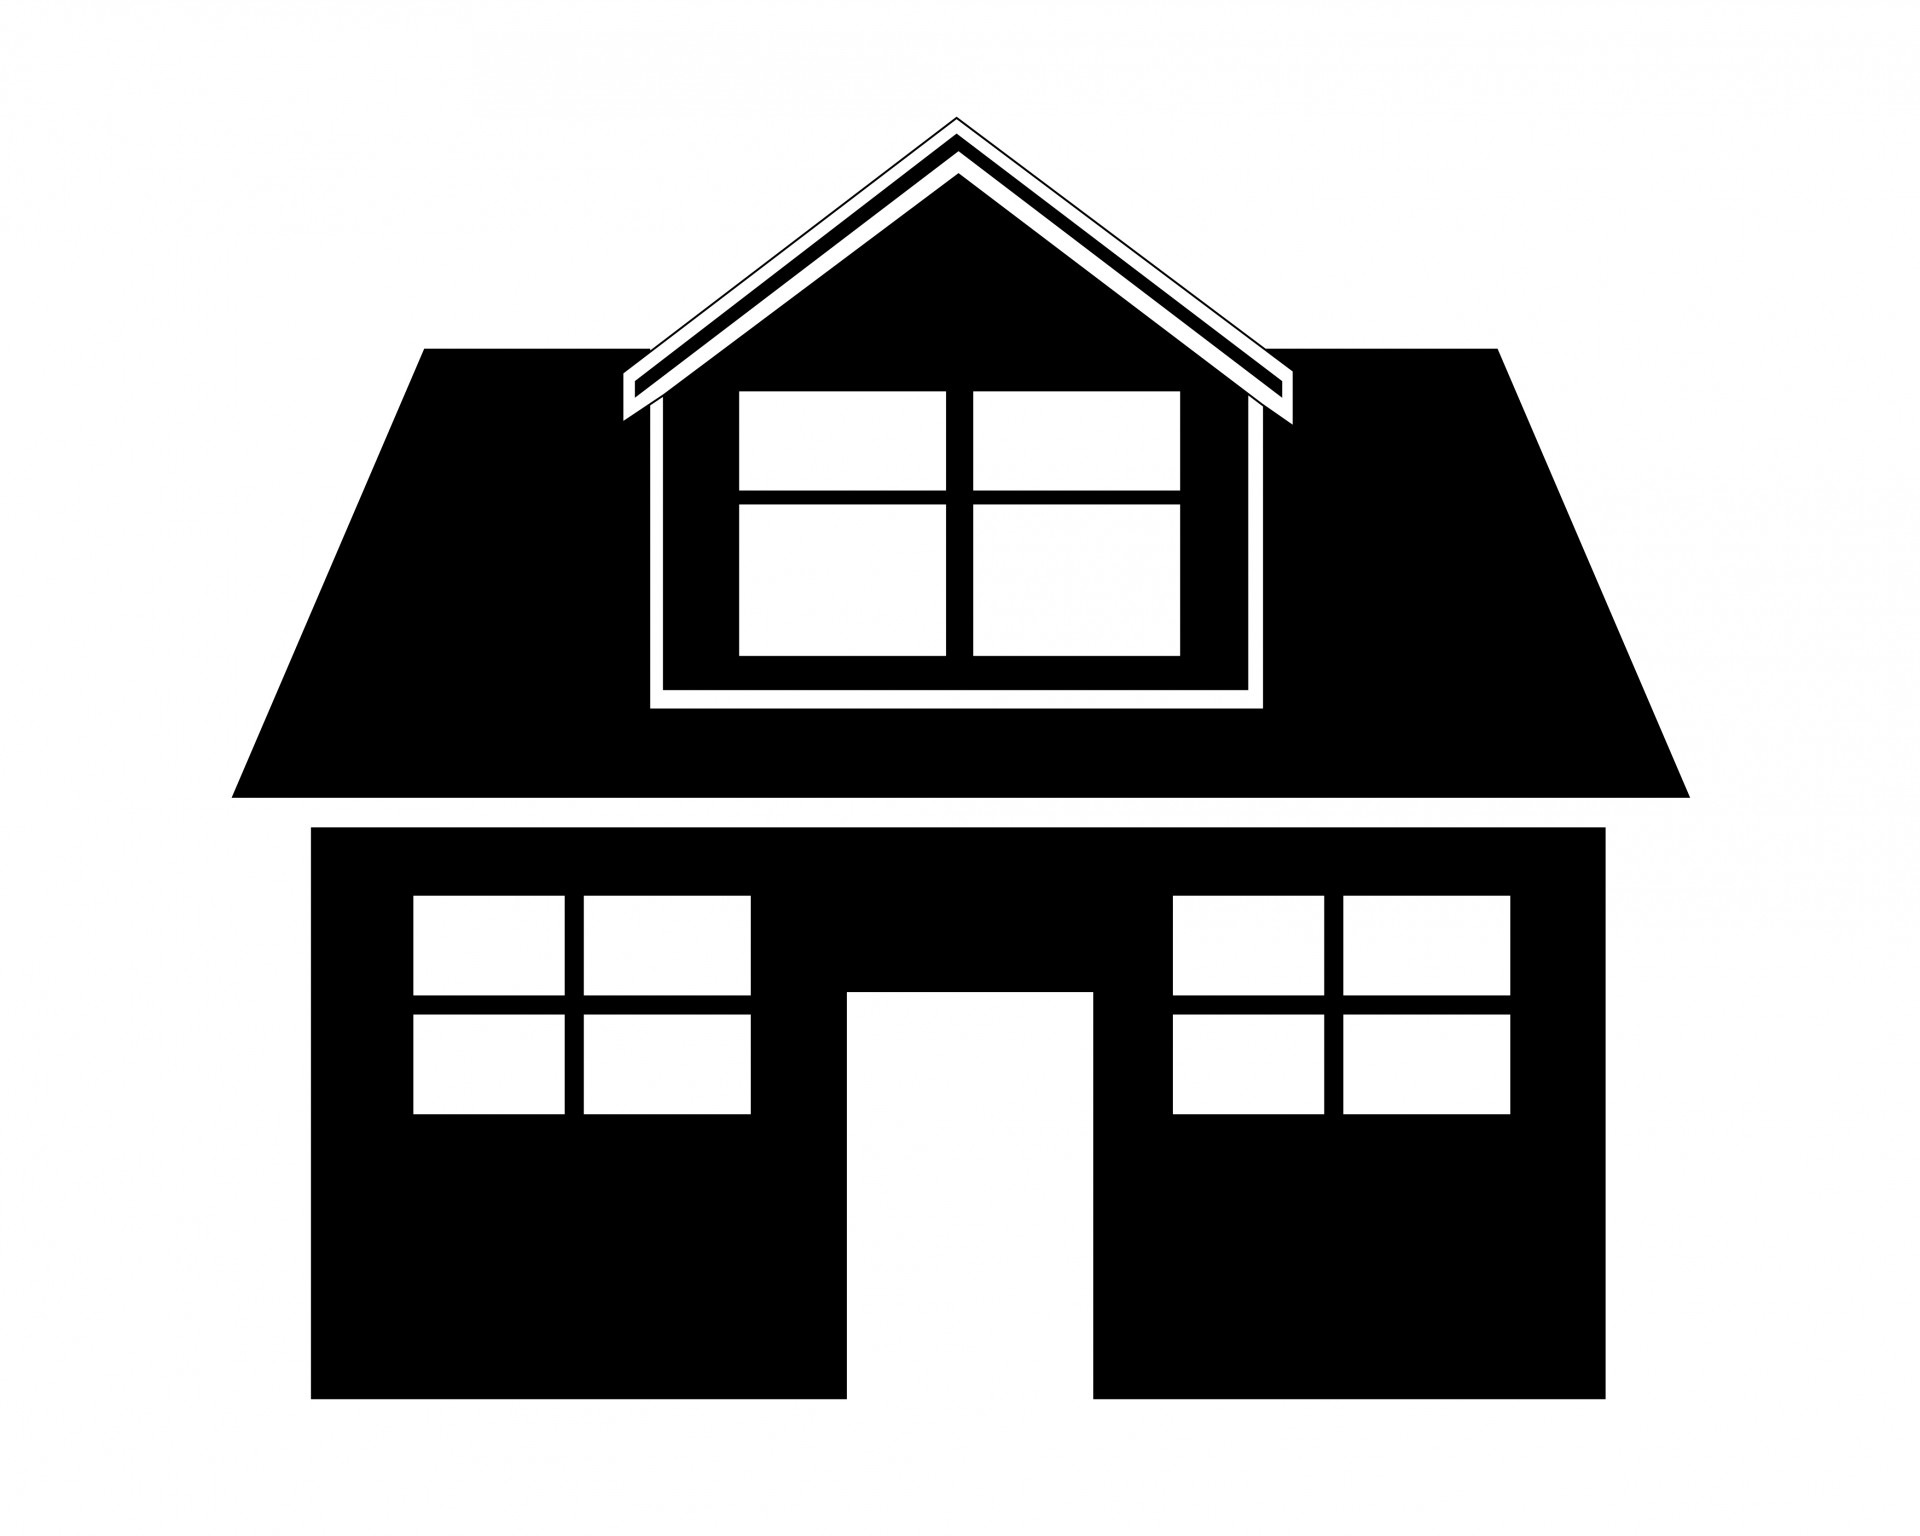 Home clipart. House free stock photo